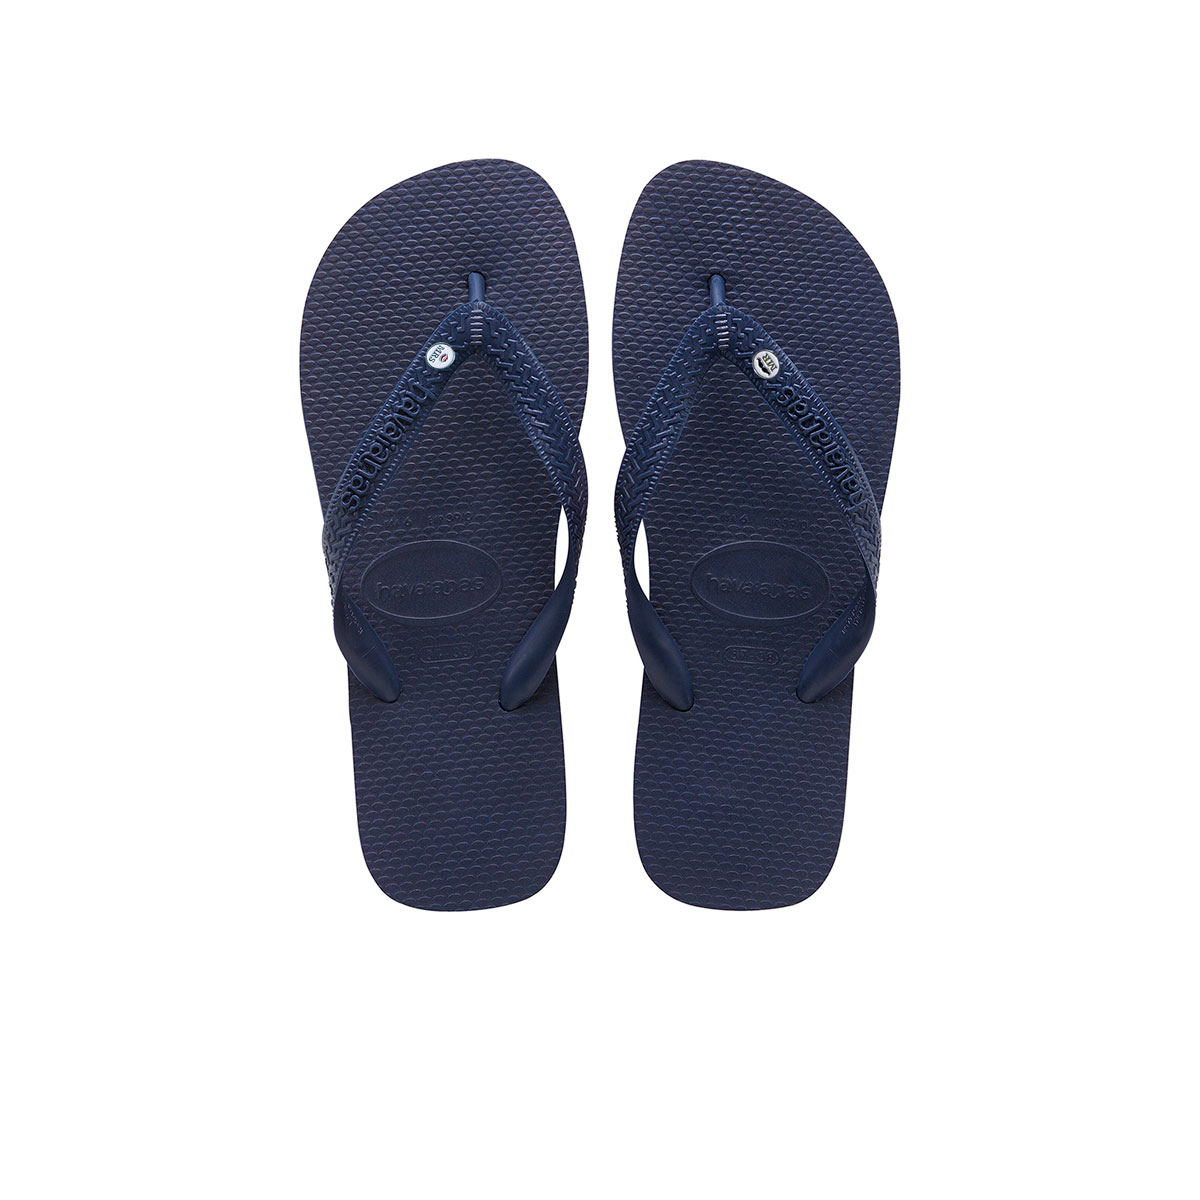 Silver Mr and Mrs Charm Havaianas Top Flip Flops Navy Wedding Gift